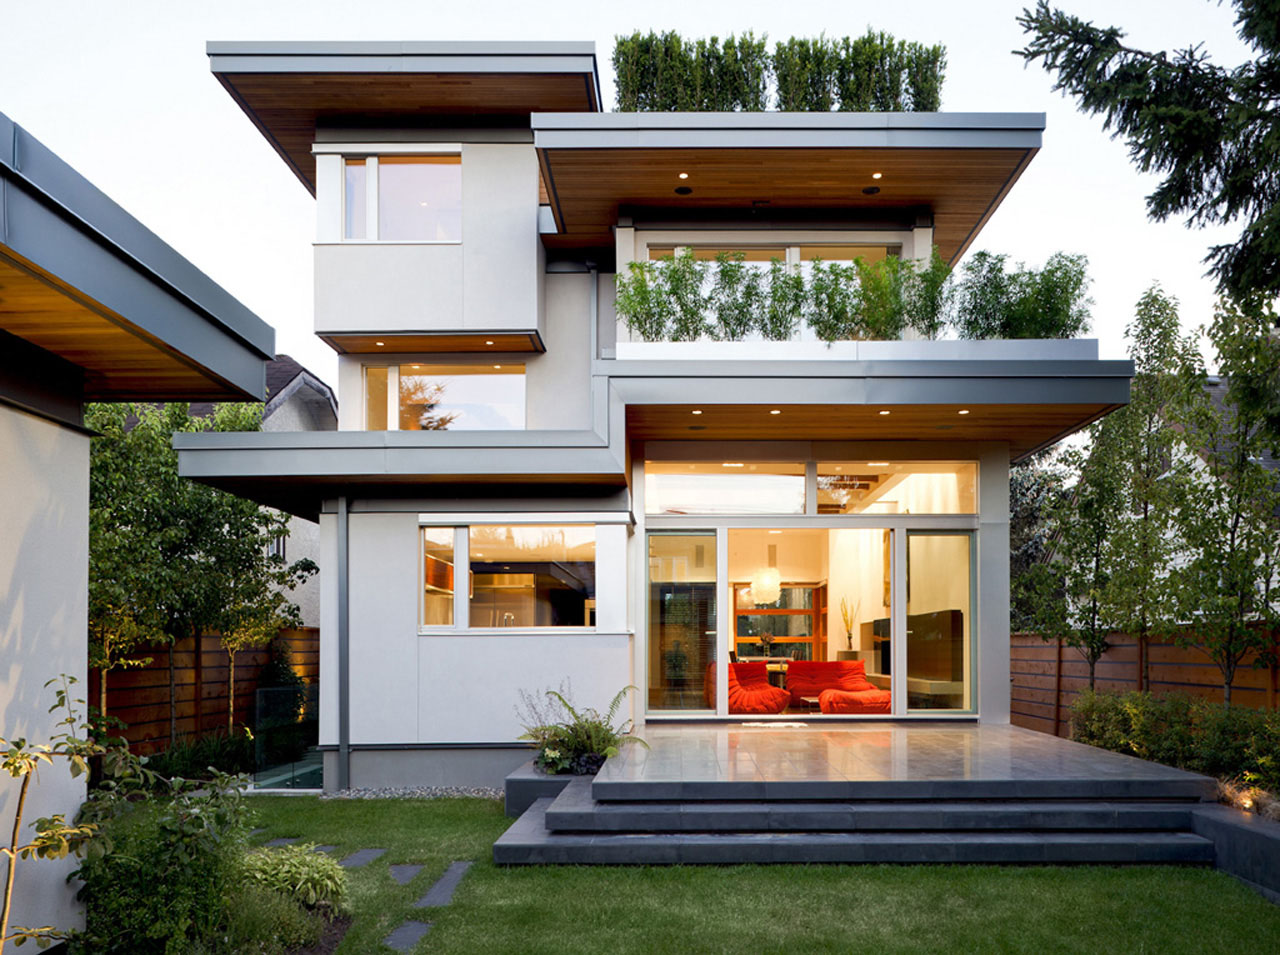 Sustainable Home Design In Vancouver IDesignArch Interior